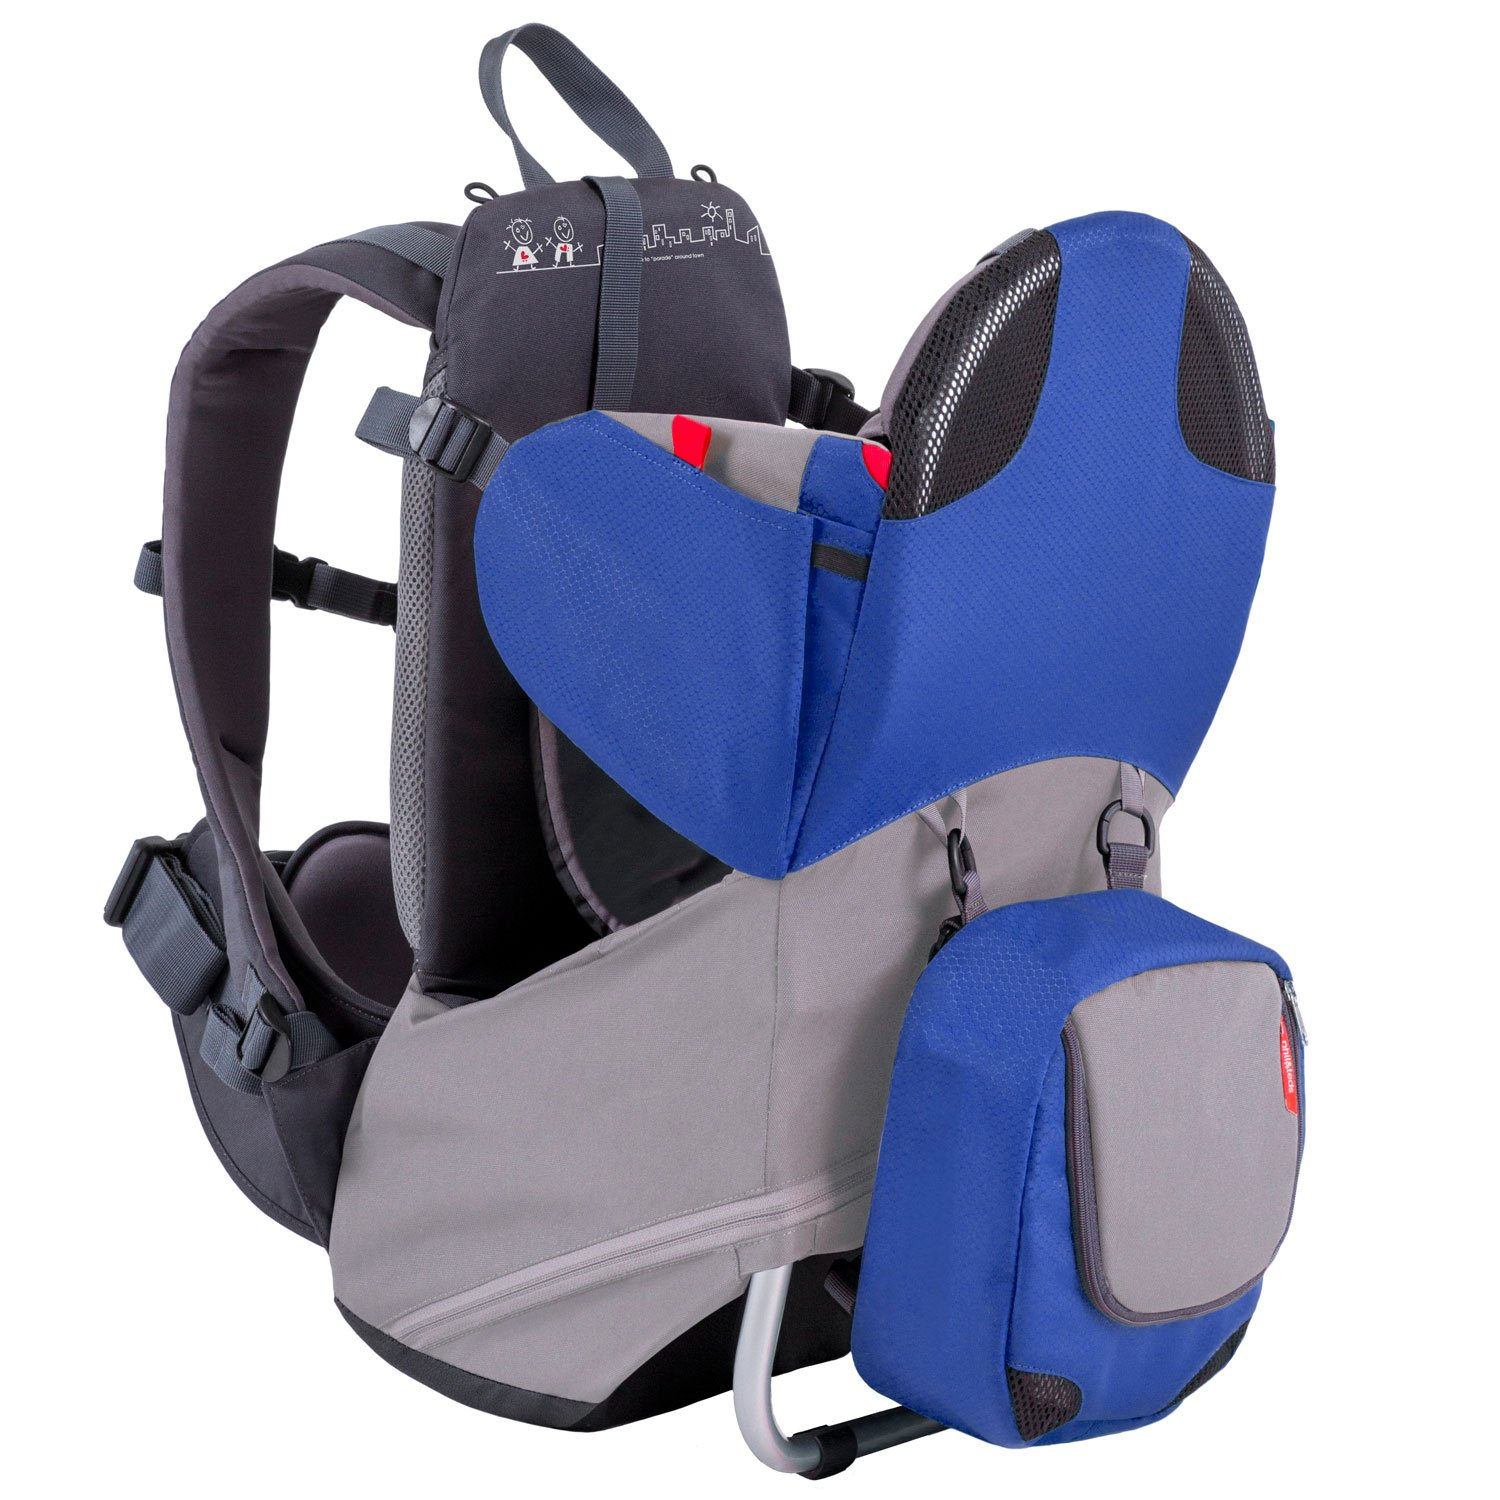 phil&teds Parade Lightweight Backpack Carrier, Blue/Grey by phil&teds (Image #1)